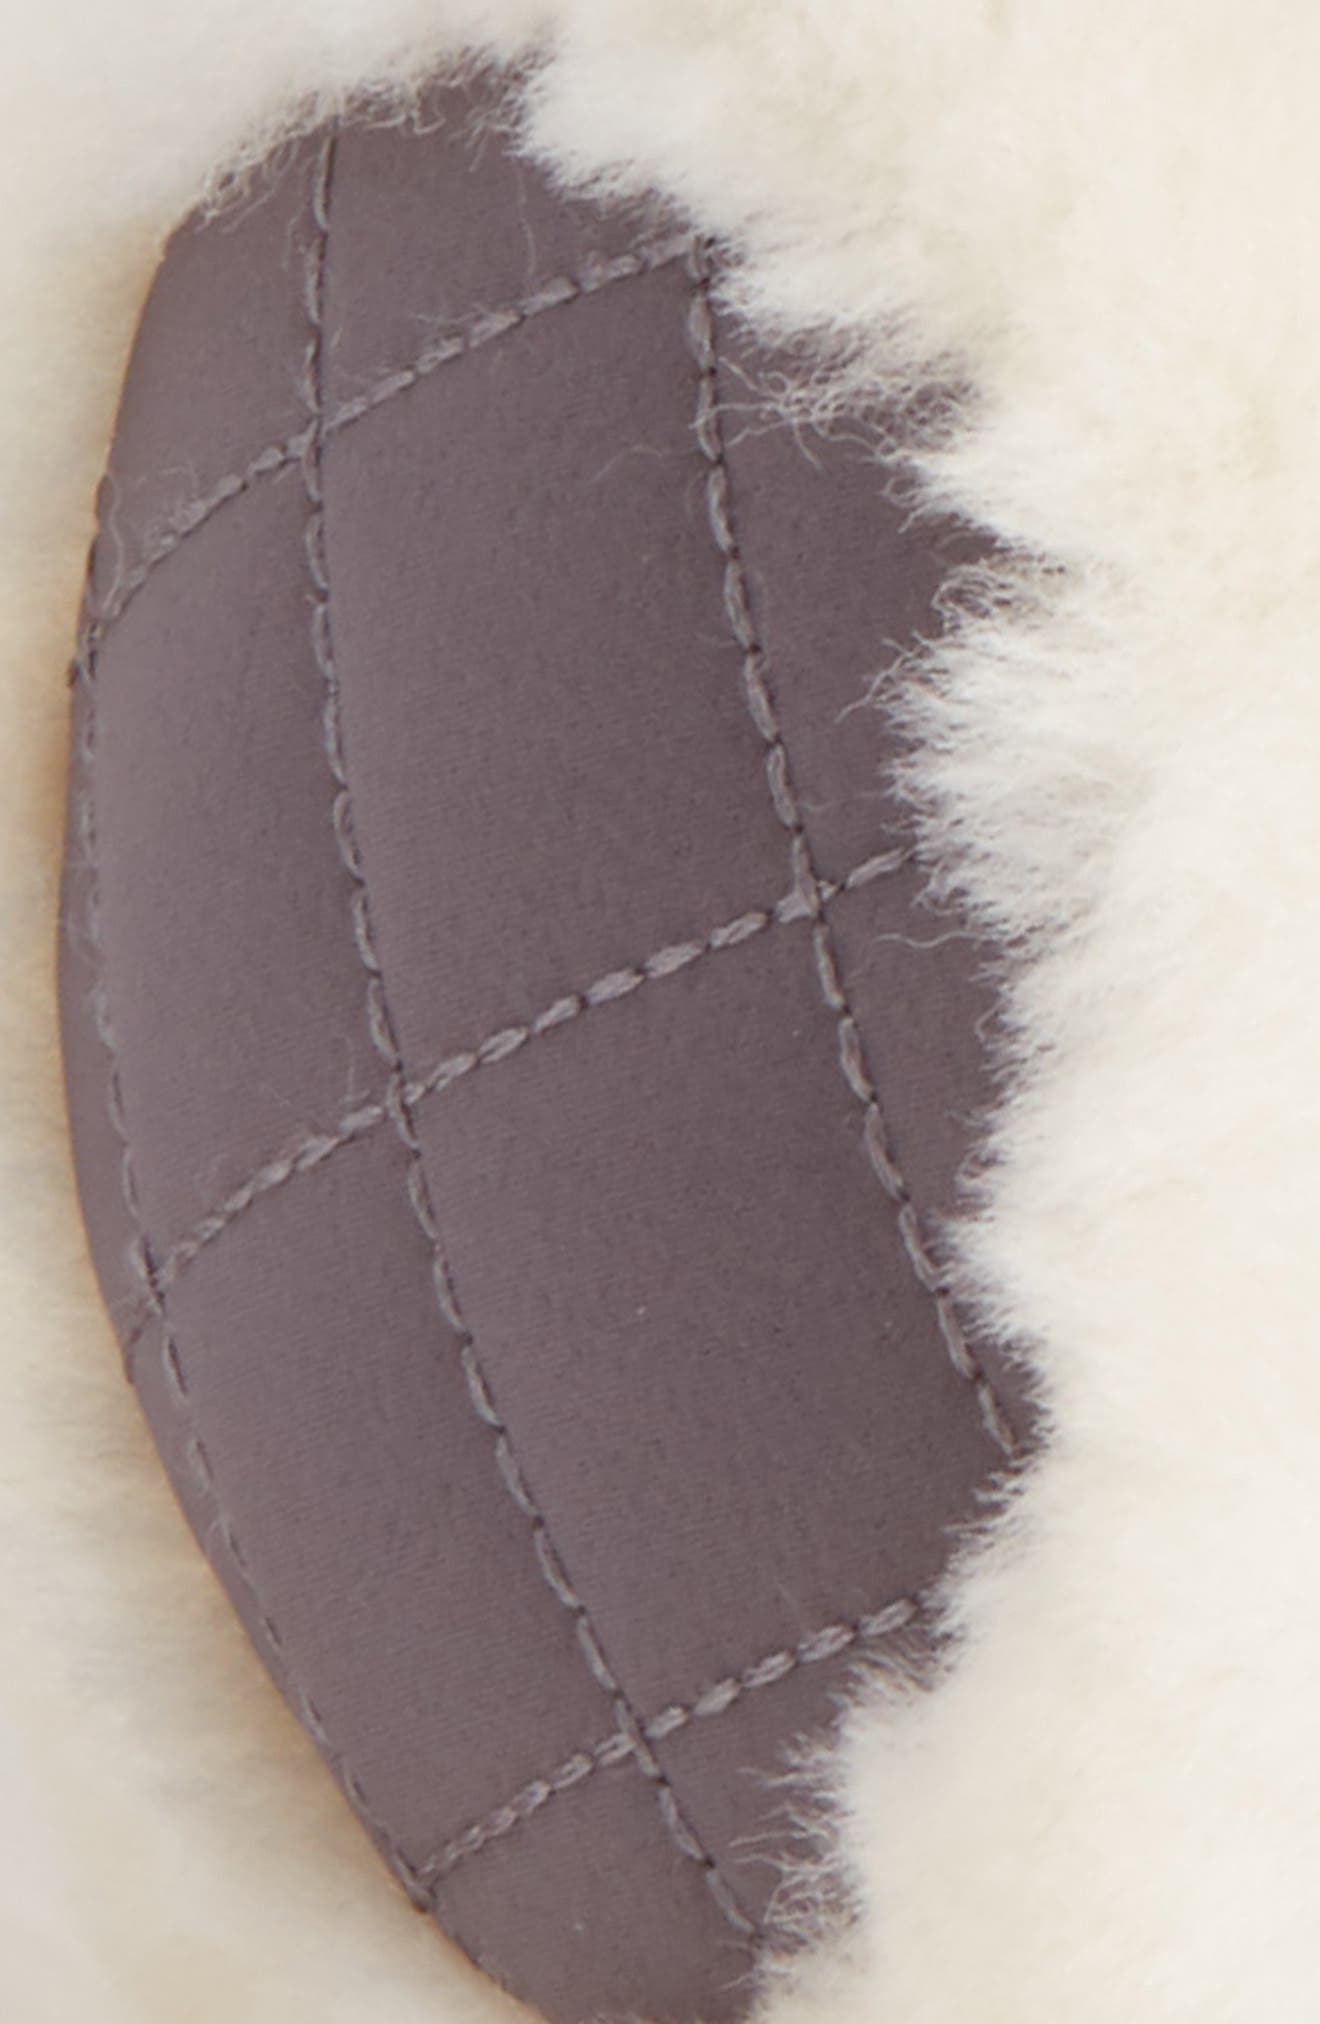 UGG<sup>®</sup> Genuine Shearling Headphone Earmuffs,                             Alternate thumbnail 2, color,                             Grey